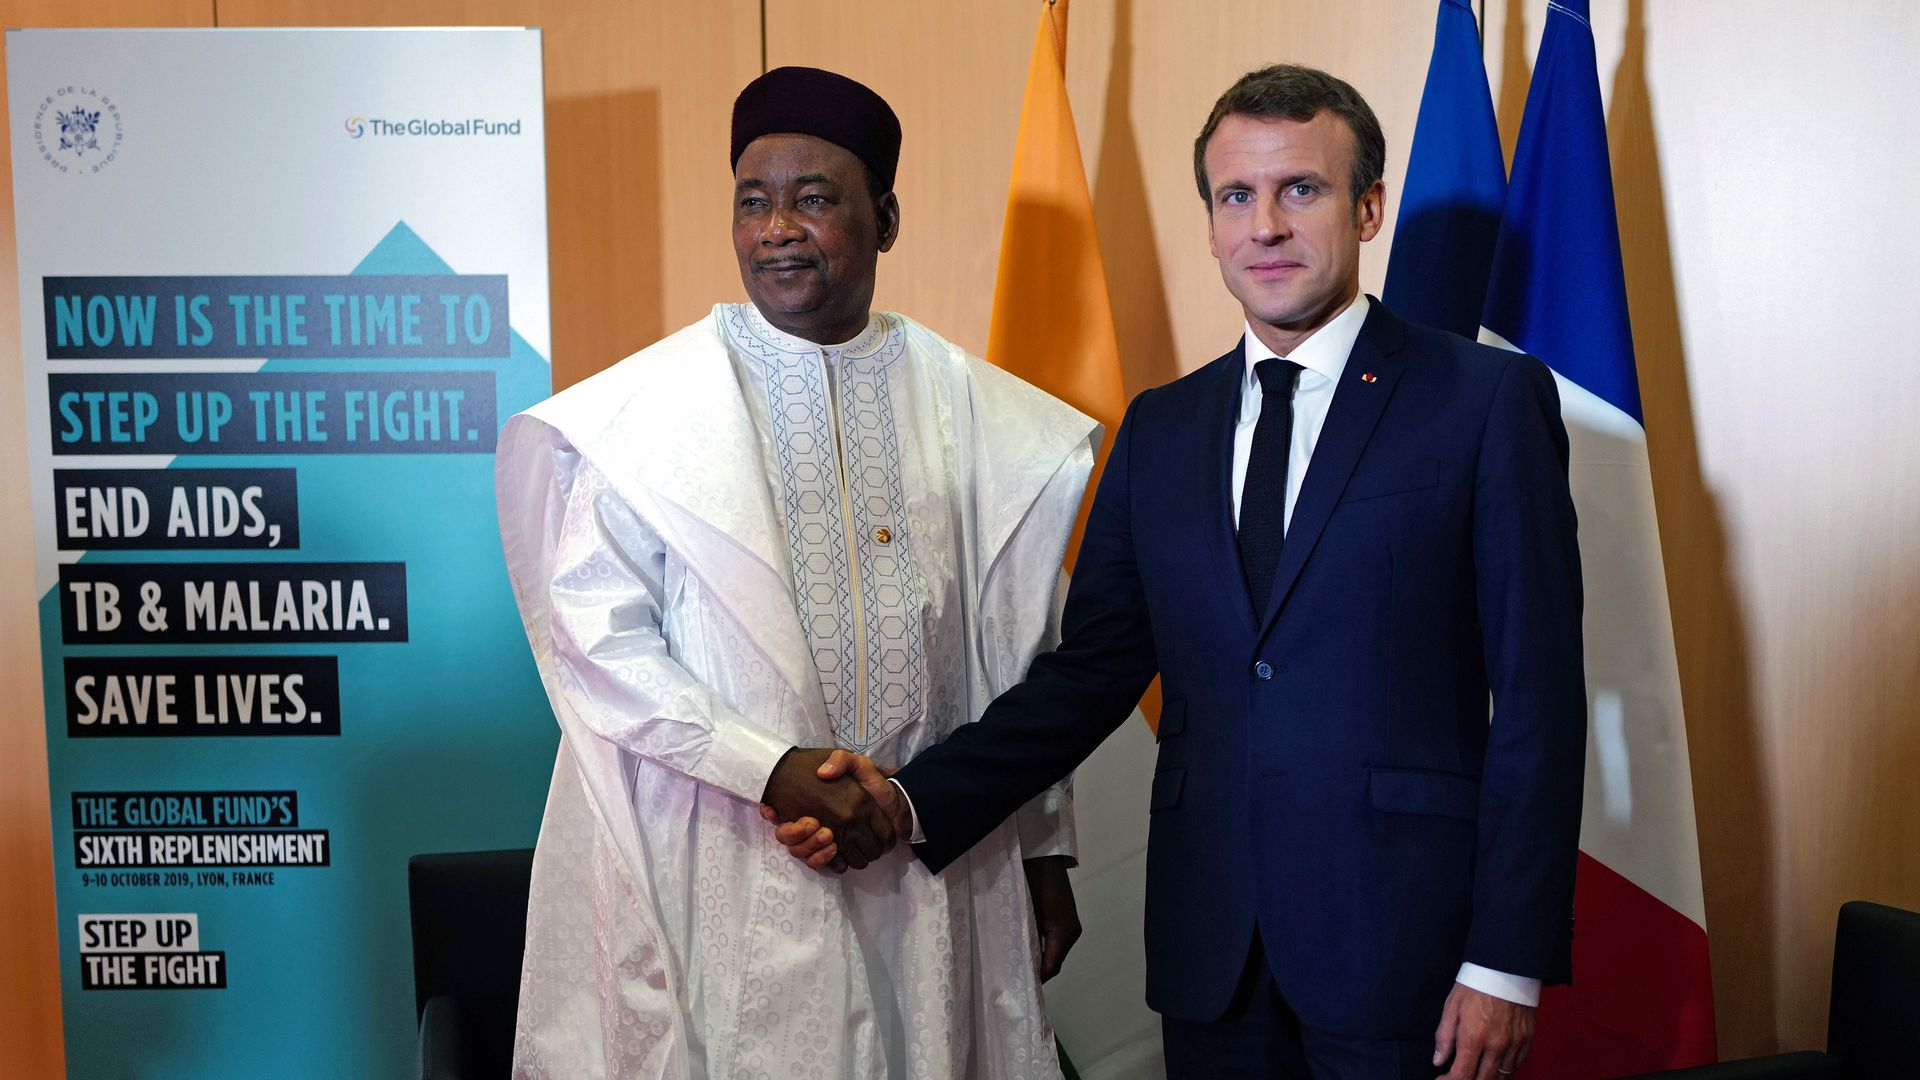 Emmanel Macron and Mahamadou Issoufou shake hands in front of flags and a Global Fund sign